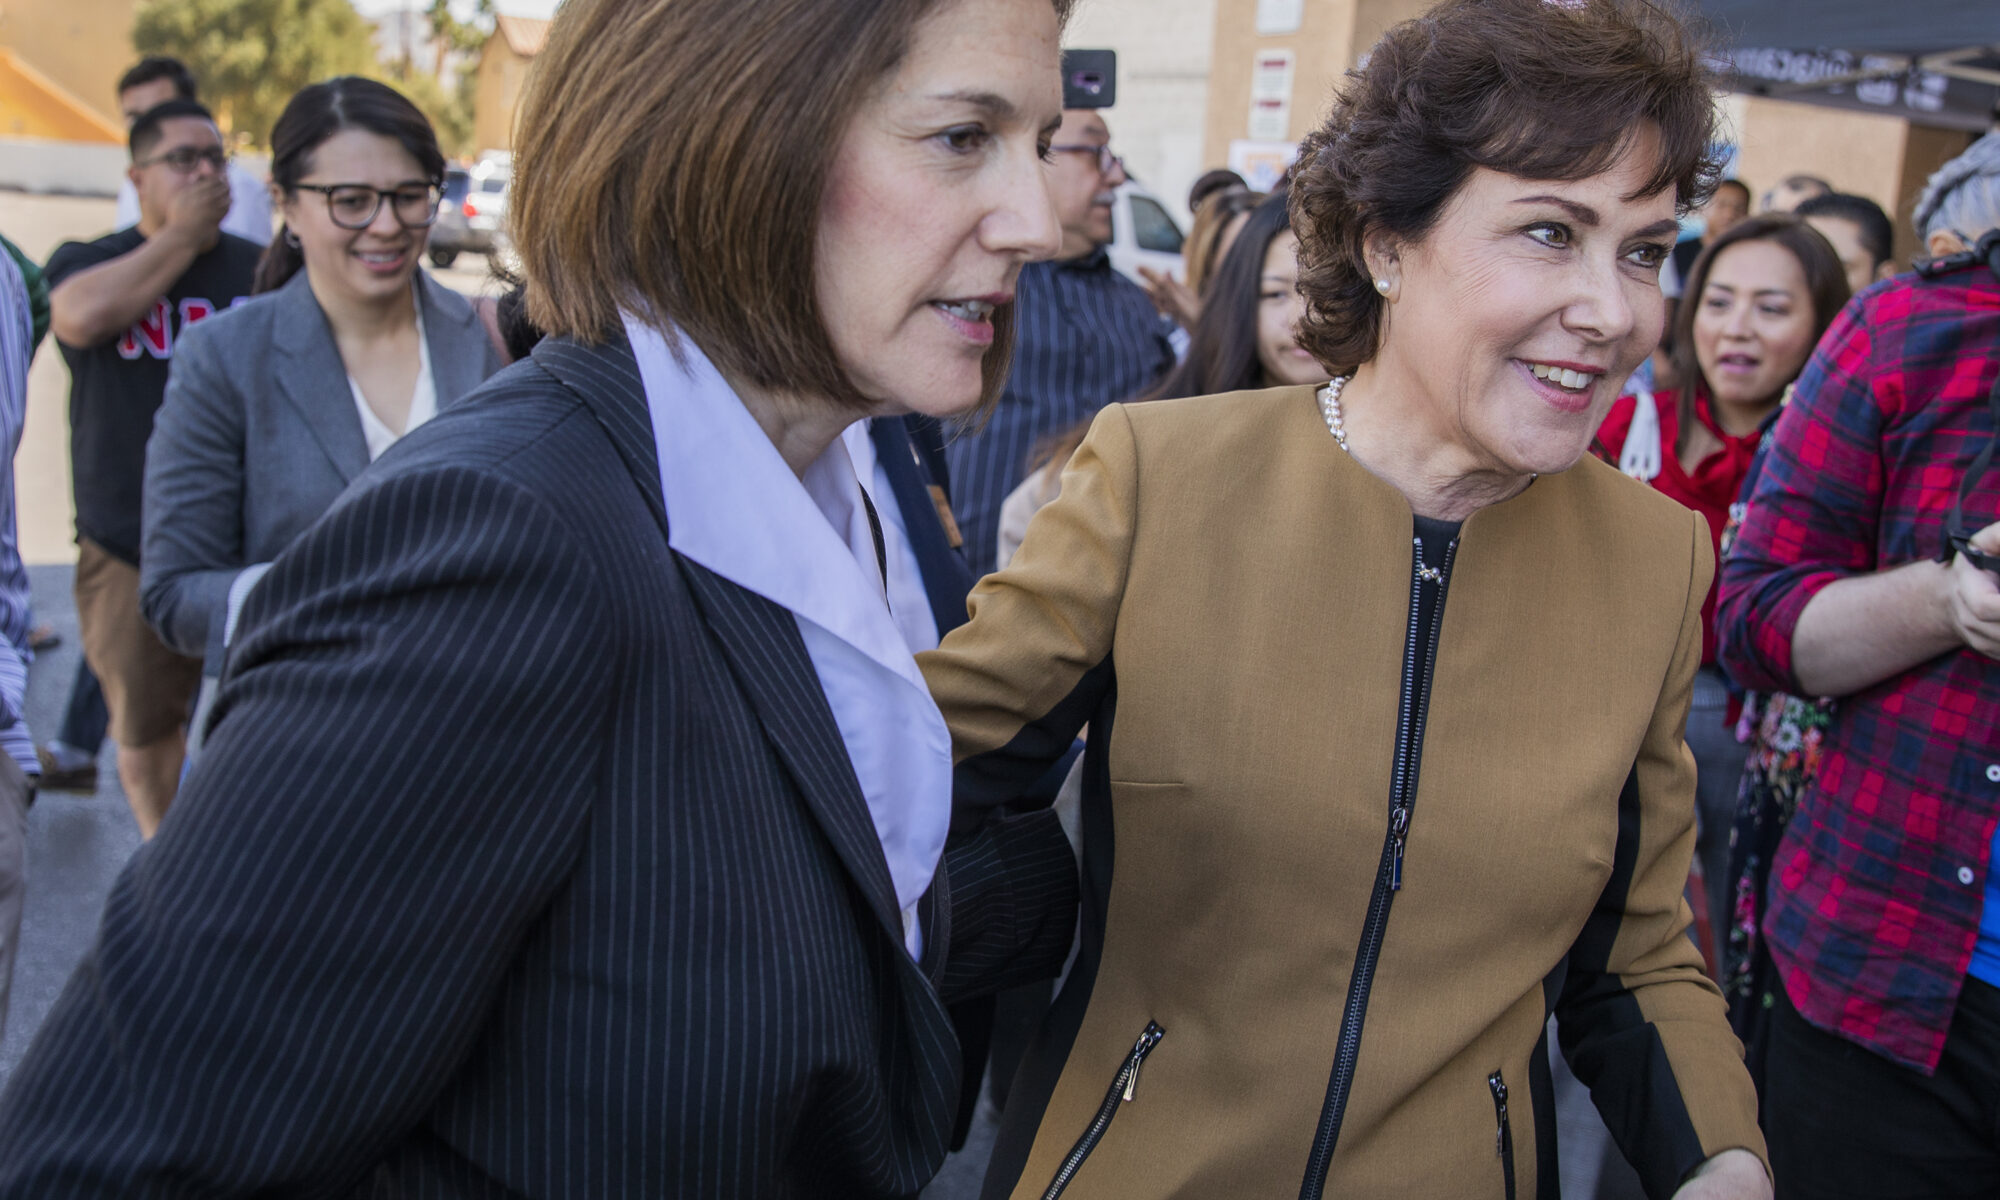 Cortez Masto, Rosen raise concerns about excessively long wait times for immigration applications